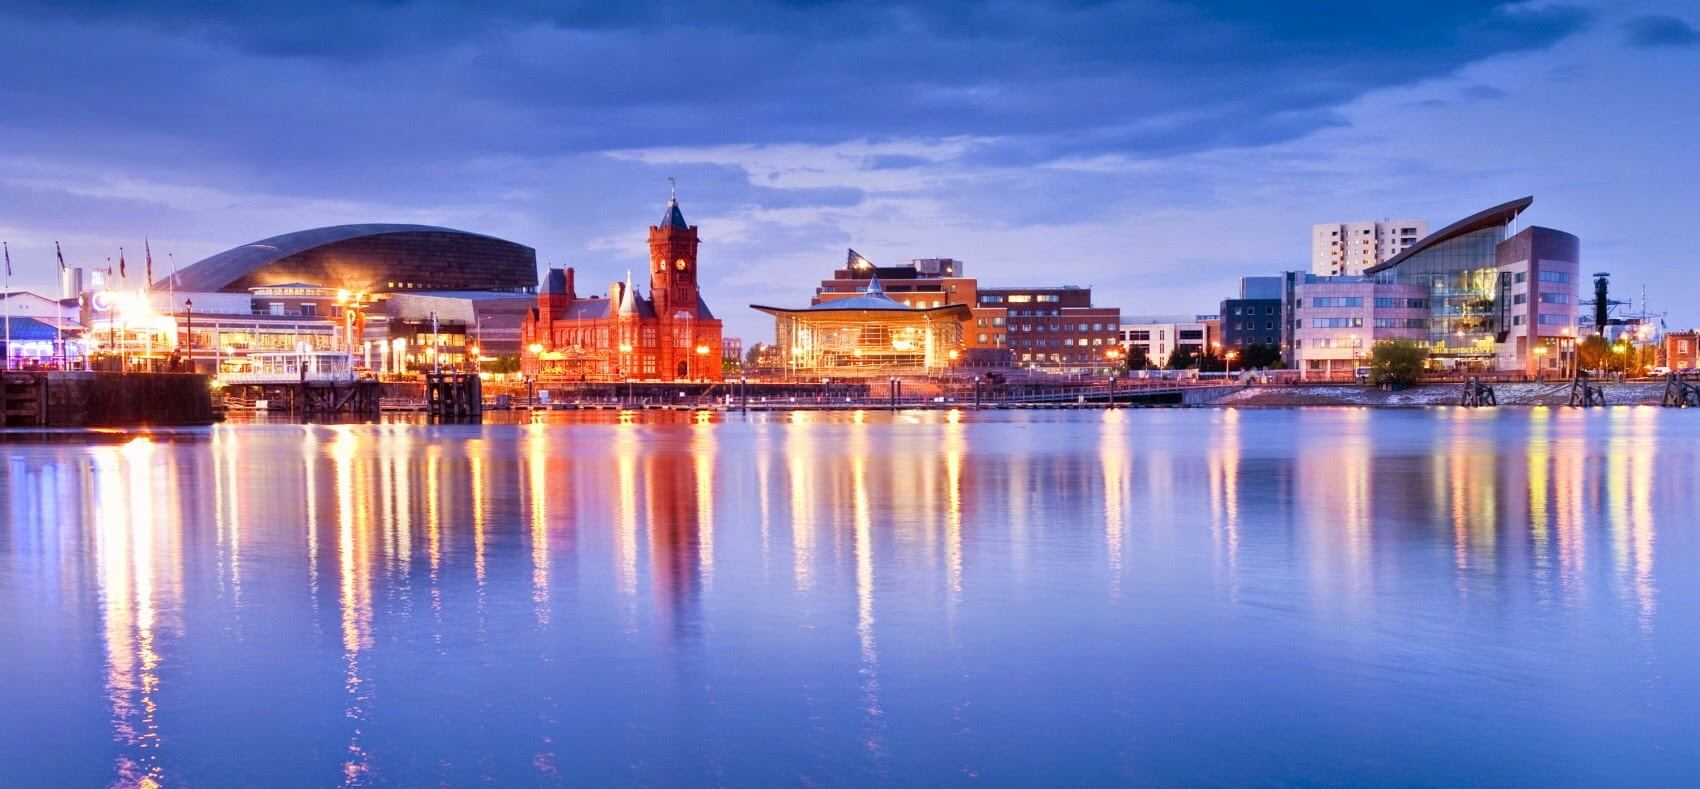 Cheap flights to Cardiff